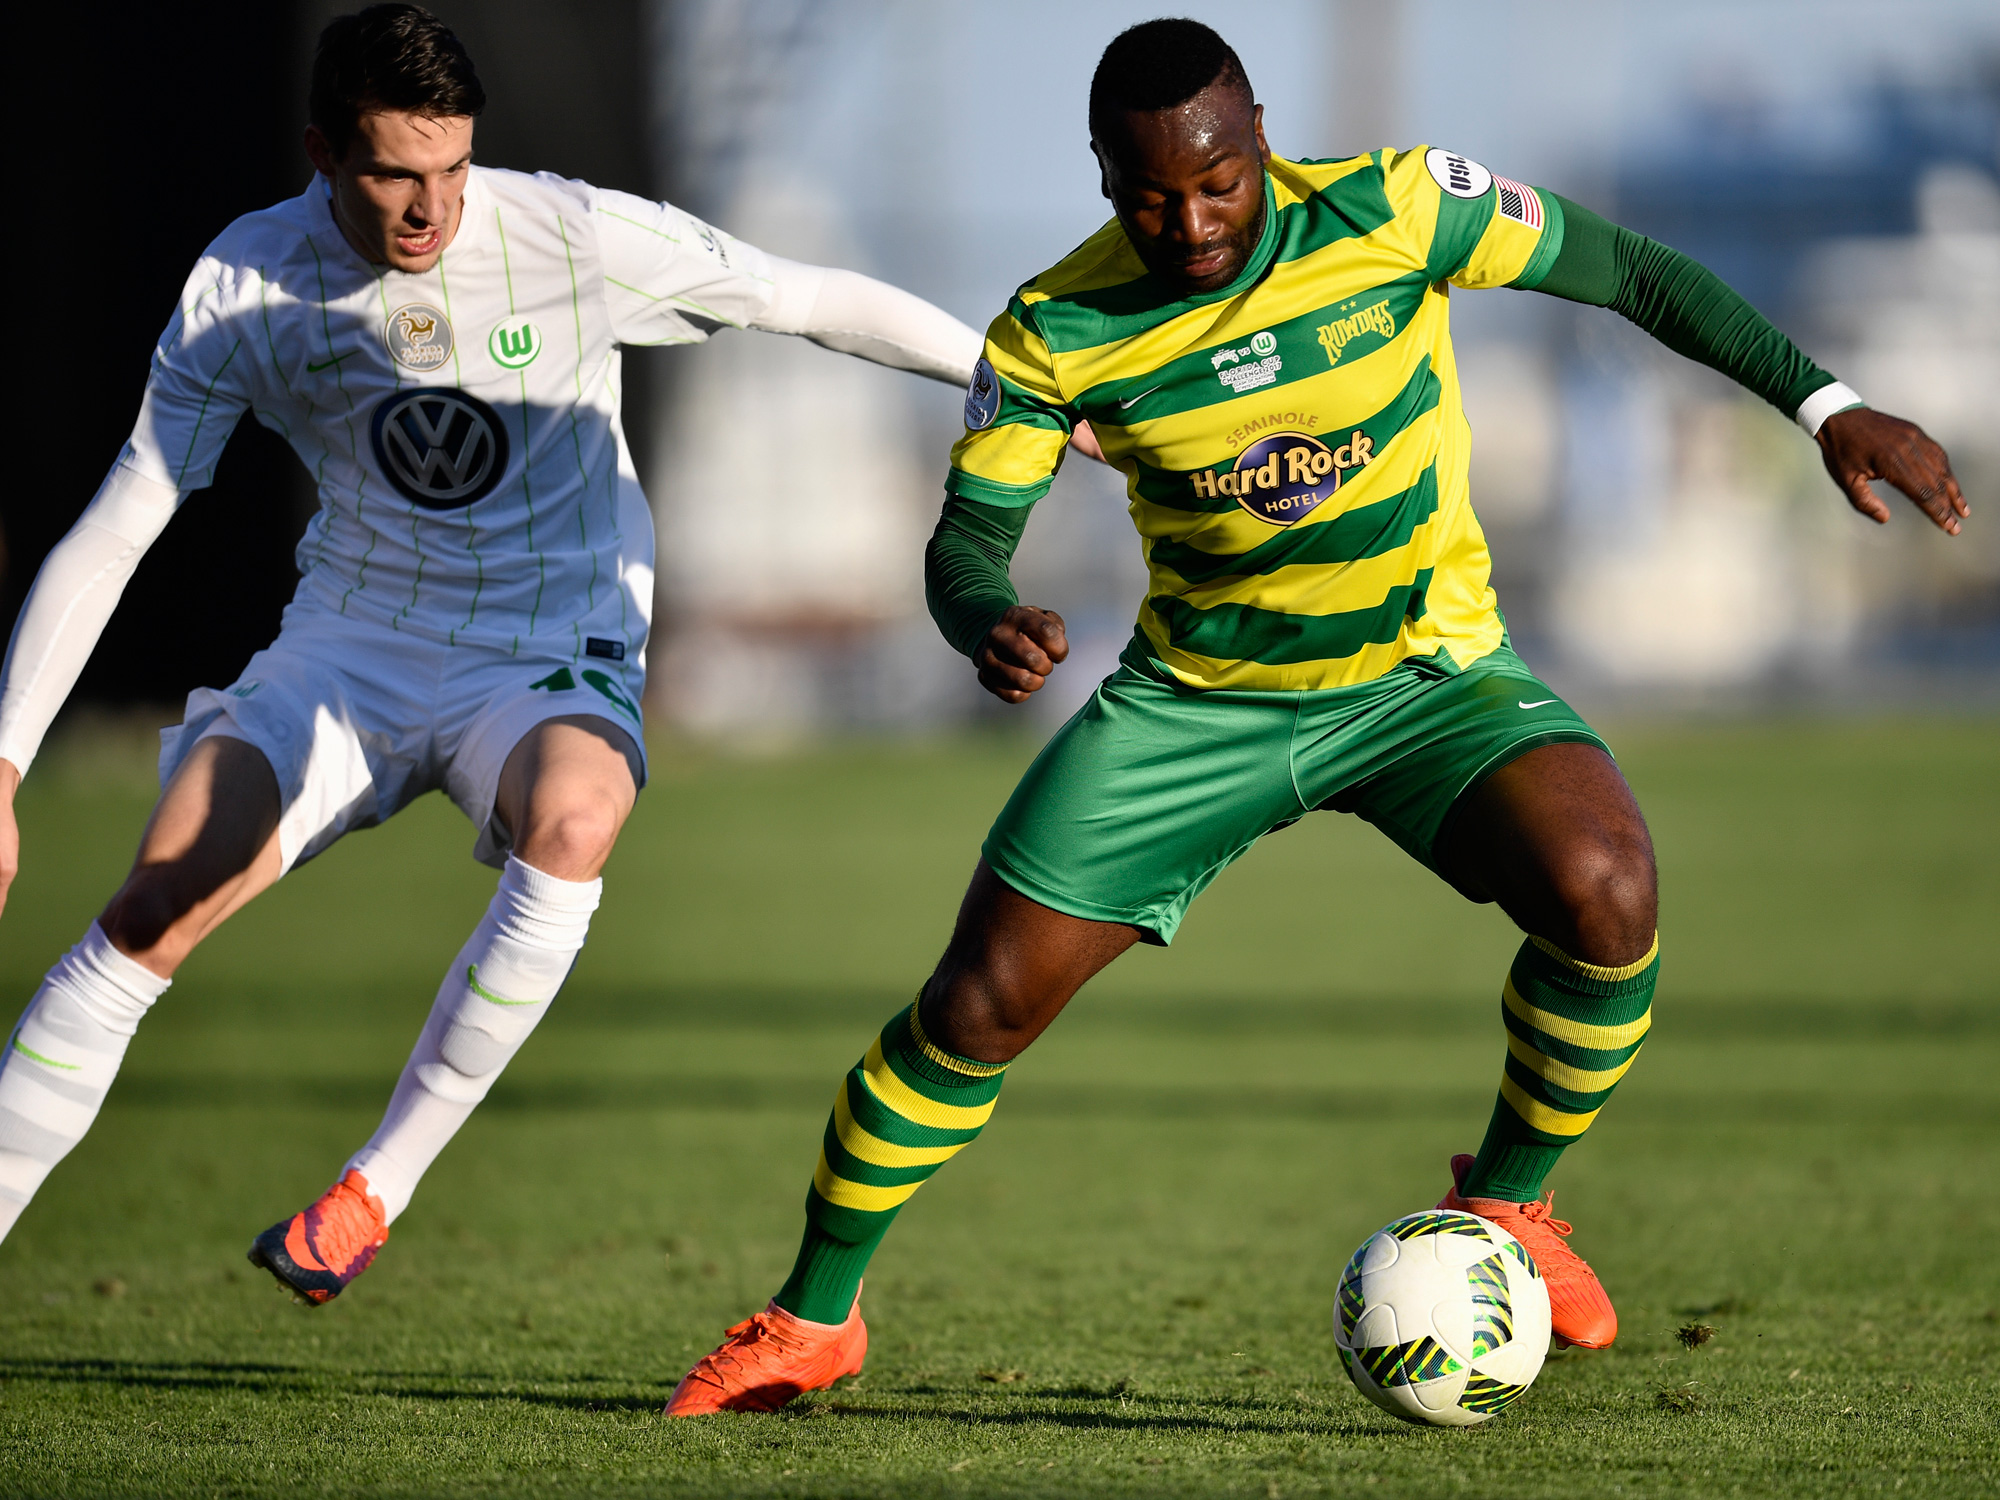 The Tampa Bay Rowdies are hoping to join MLS